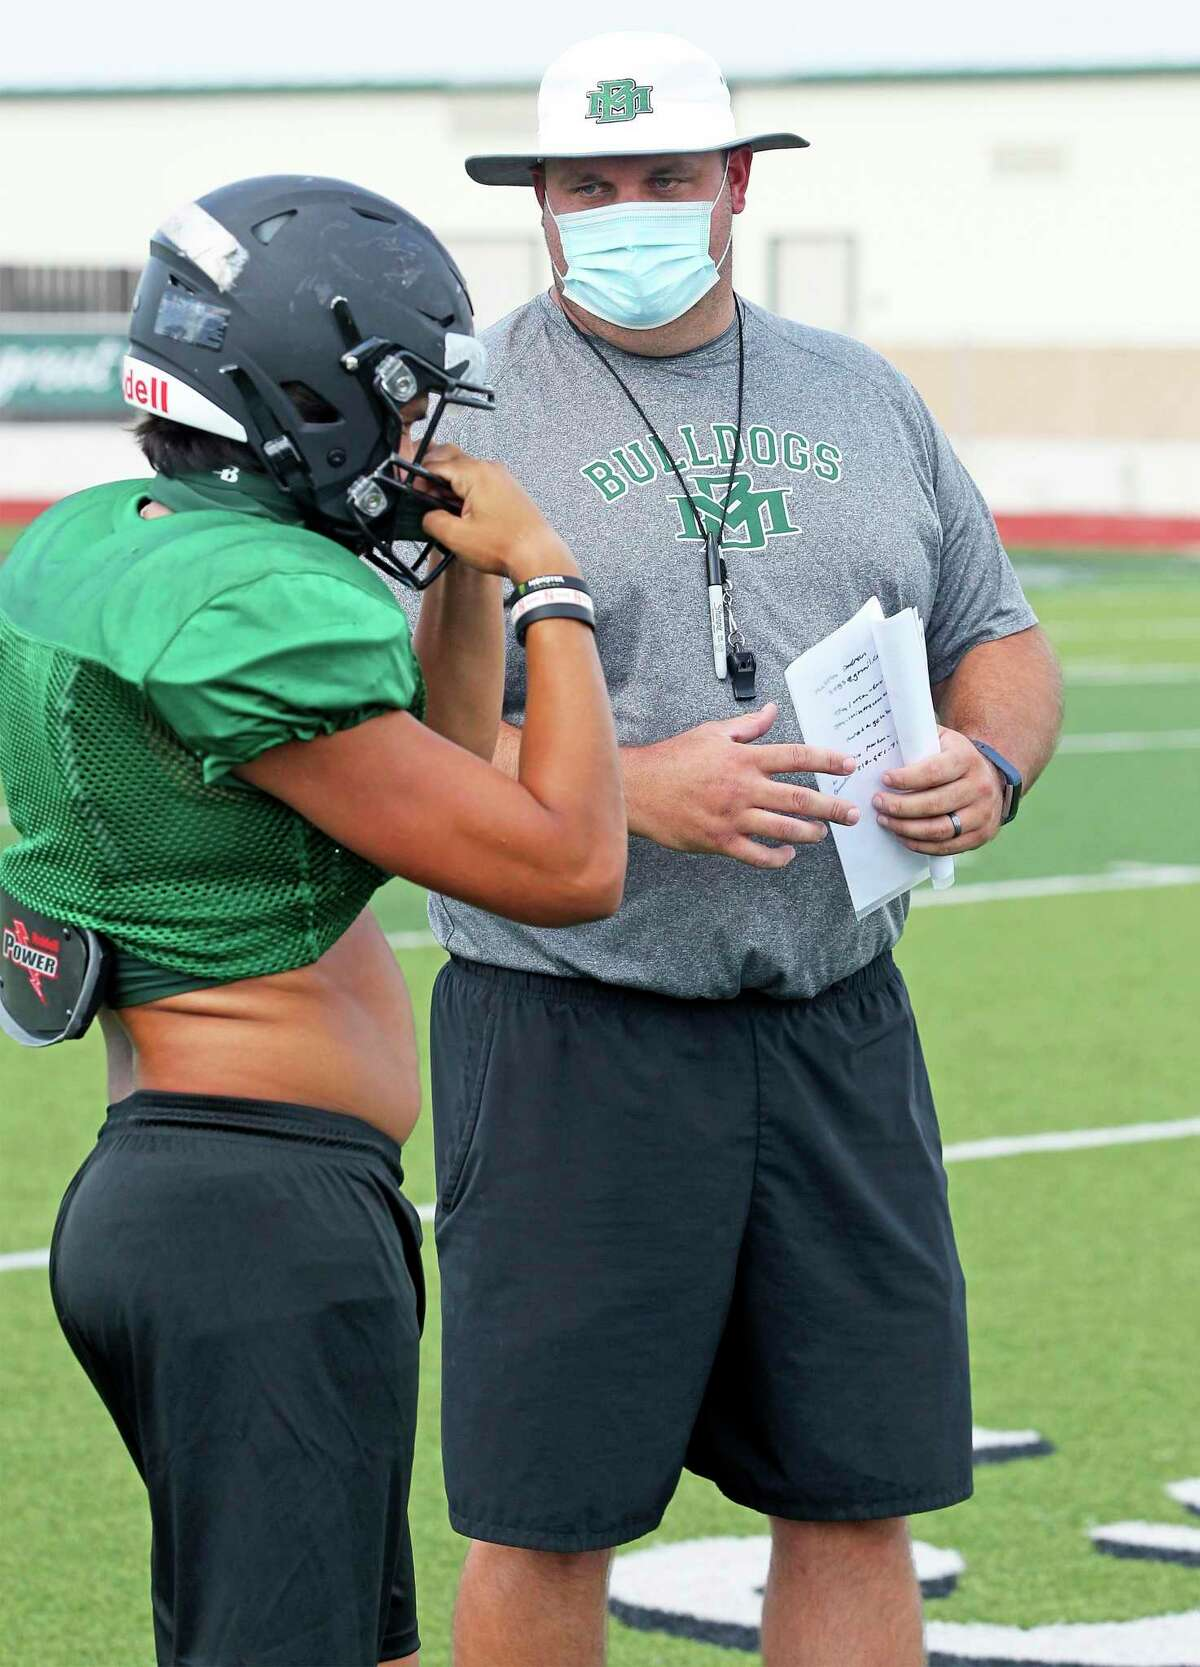 Coach Ryne Miller talks to a player as the Marion Bulldogs practice football at the school on Aug. 19, 2020.